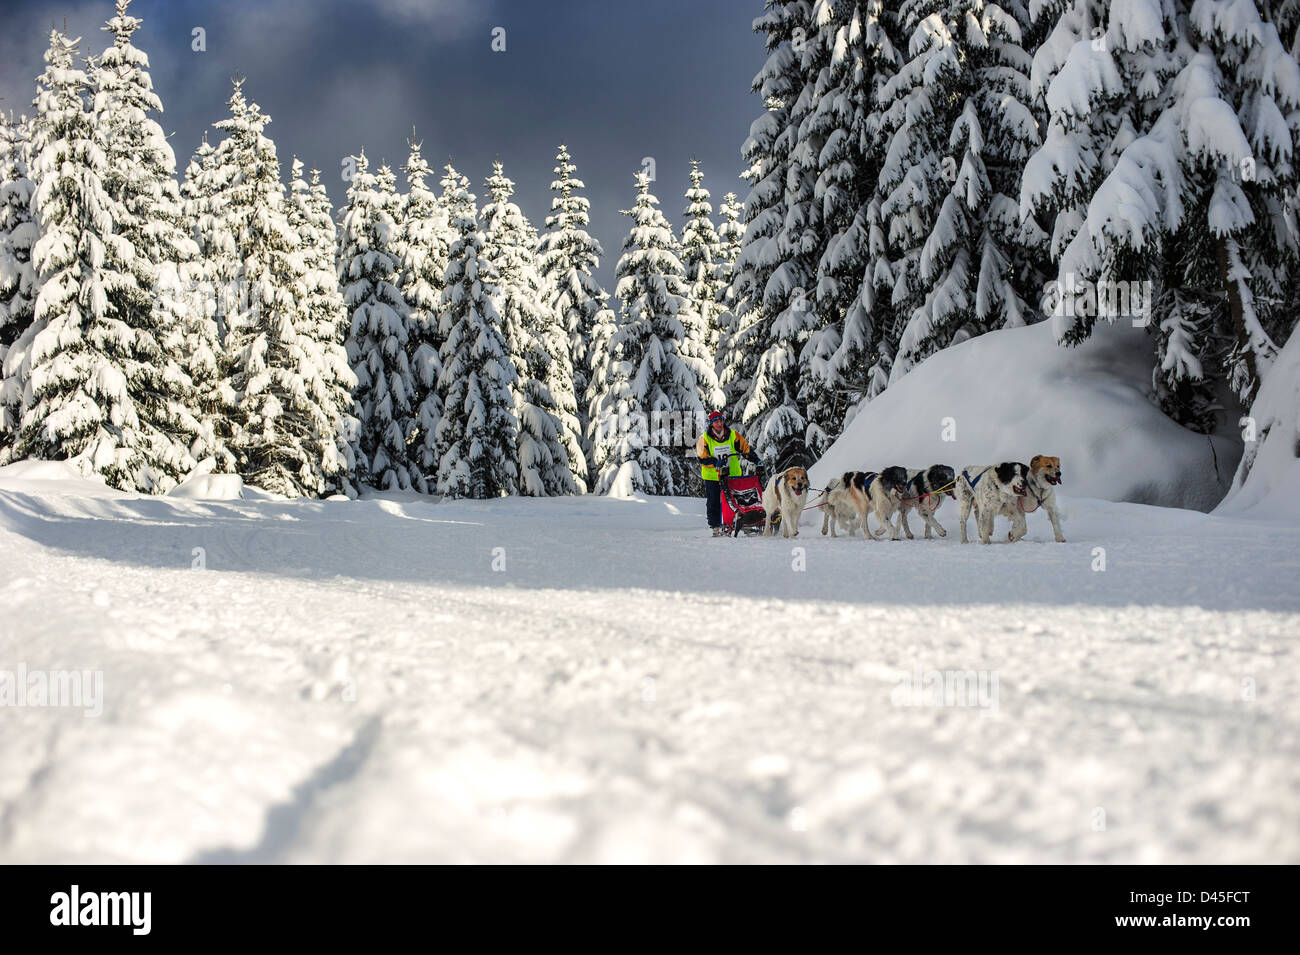 A sled dog team in the Border Rush race in the Izery Mountains, Jakuszyce, Poland. - Stock Image